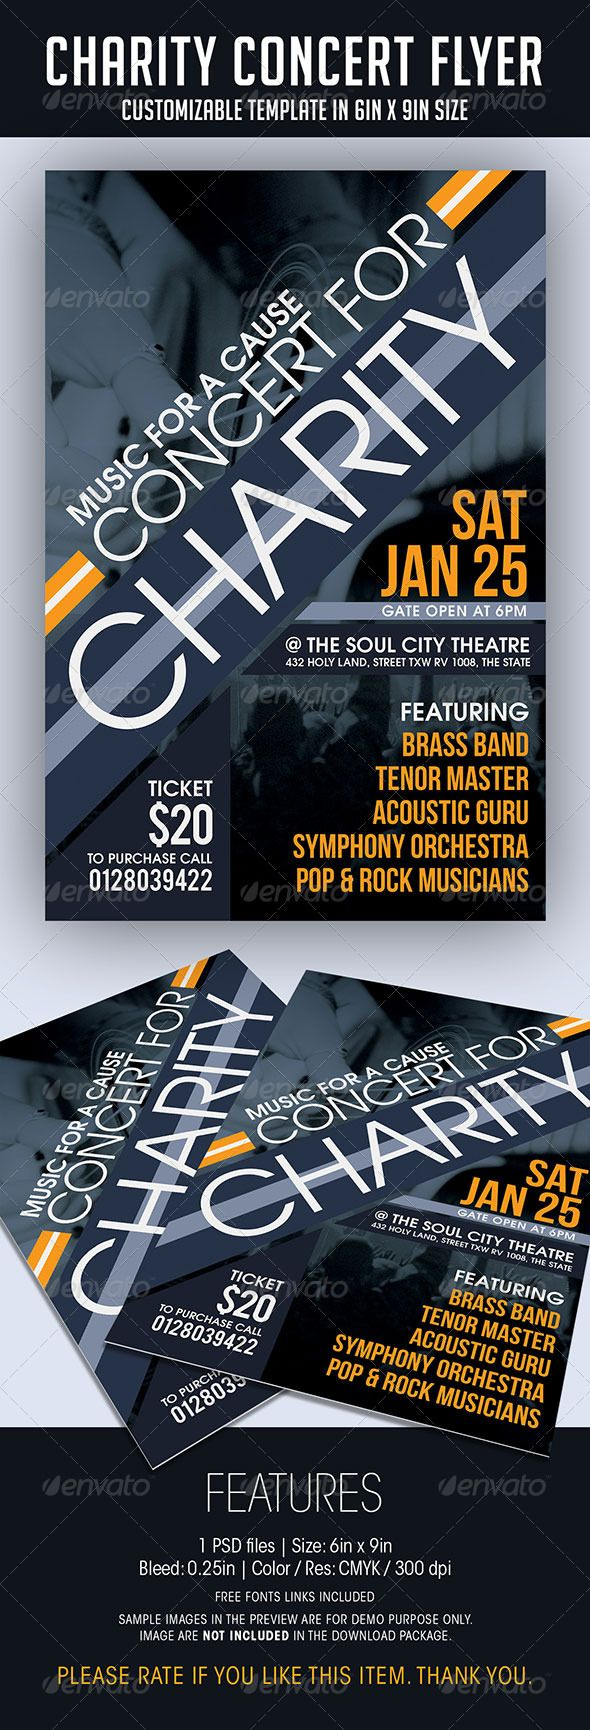 Charity Concert Flyer #GraphicRiver CHARITY CONCERT FLYER FEATURES 1 PSD file • PSD Layers are well organized, grouped, and appropriately named Size: 6in x 9in (Portrait) Bleed: 0.25in Color: CMYK / 300 dpi Fonts Bebas Neue TeX-Gyre-Adventor • Photo in the preview is for DEMO purpose only, and NOT INCLUDED in the download package. • A text file listing the URL of free fonts is included Please rate if you like this item. Thank you so much!! MORE CONCERT THEME FLYER BY SOULMEMORIA YOU MAY…